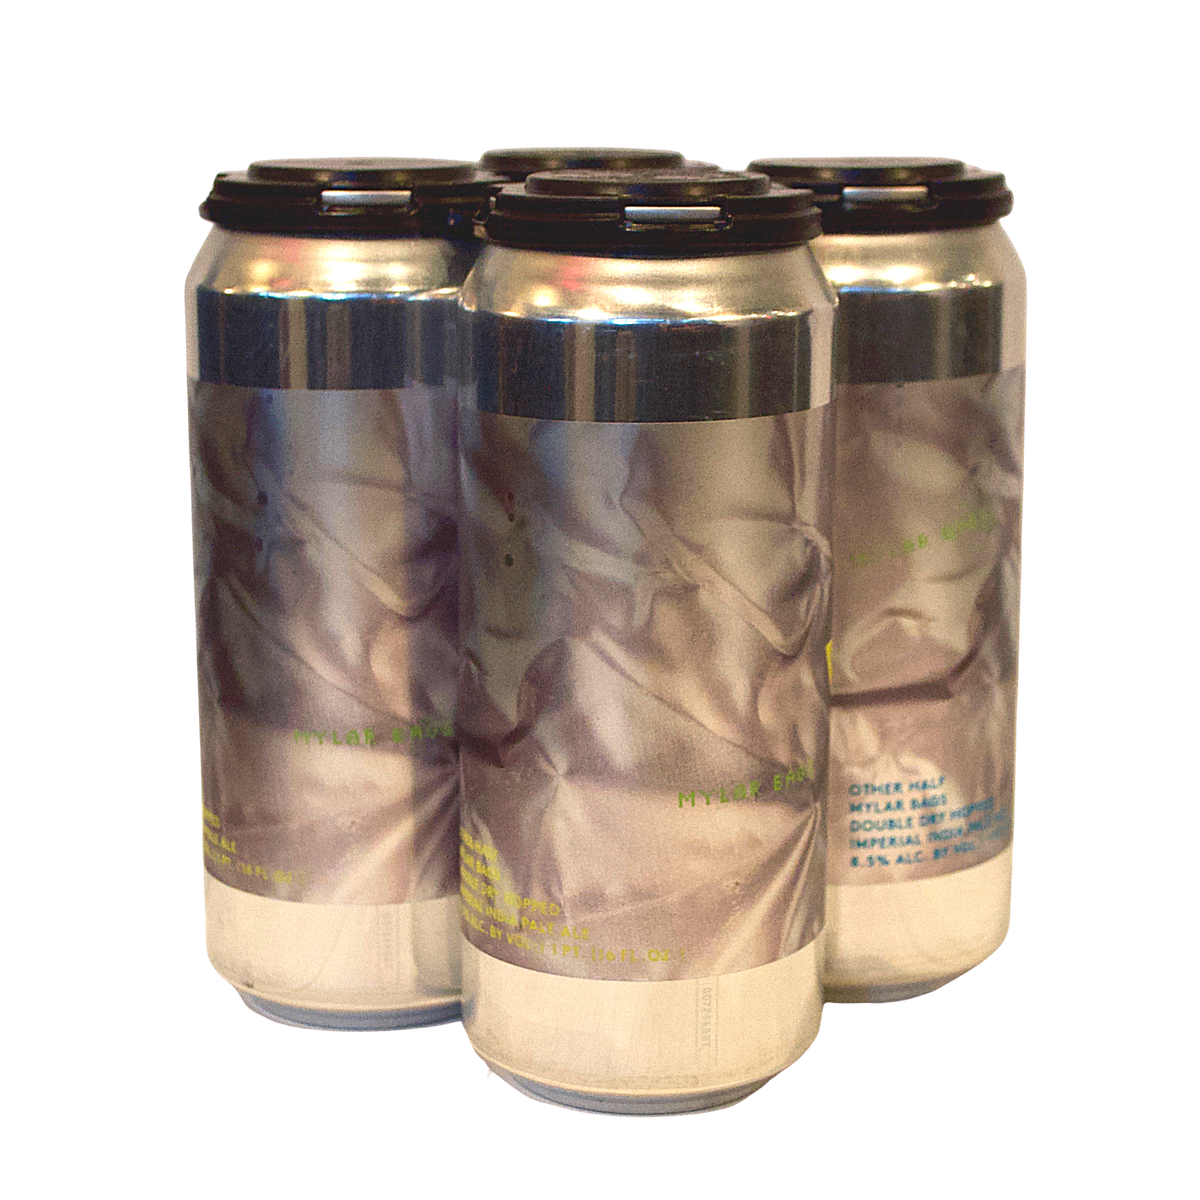 Other Half DDH Mylar Bags 4-Pack (Imperial IPA) (Max Two Per Order)